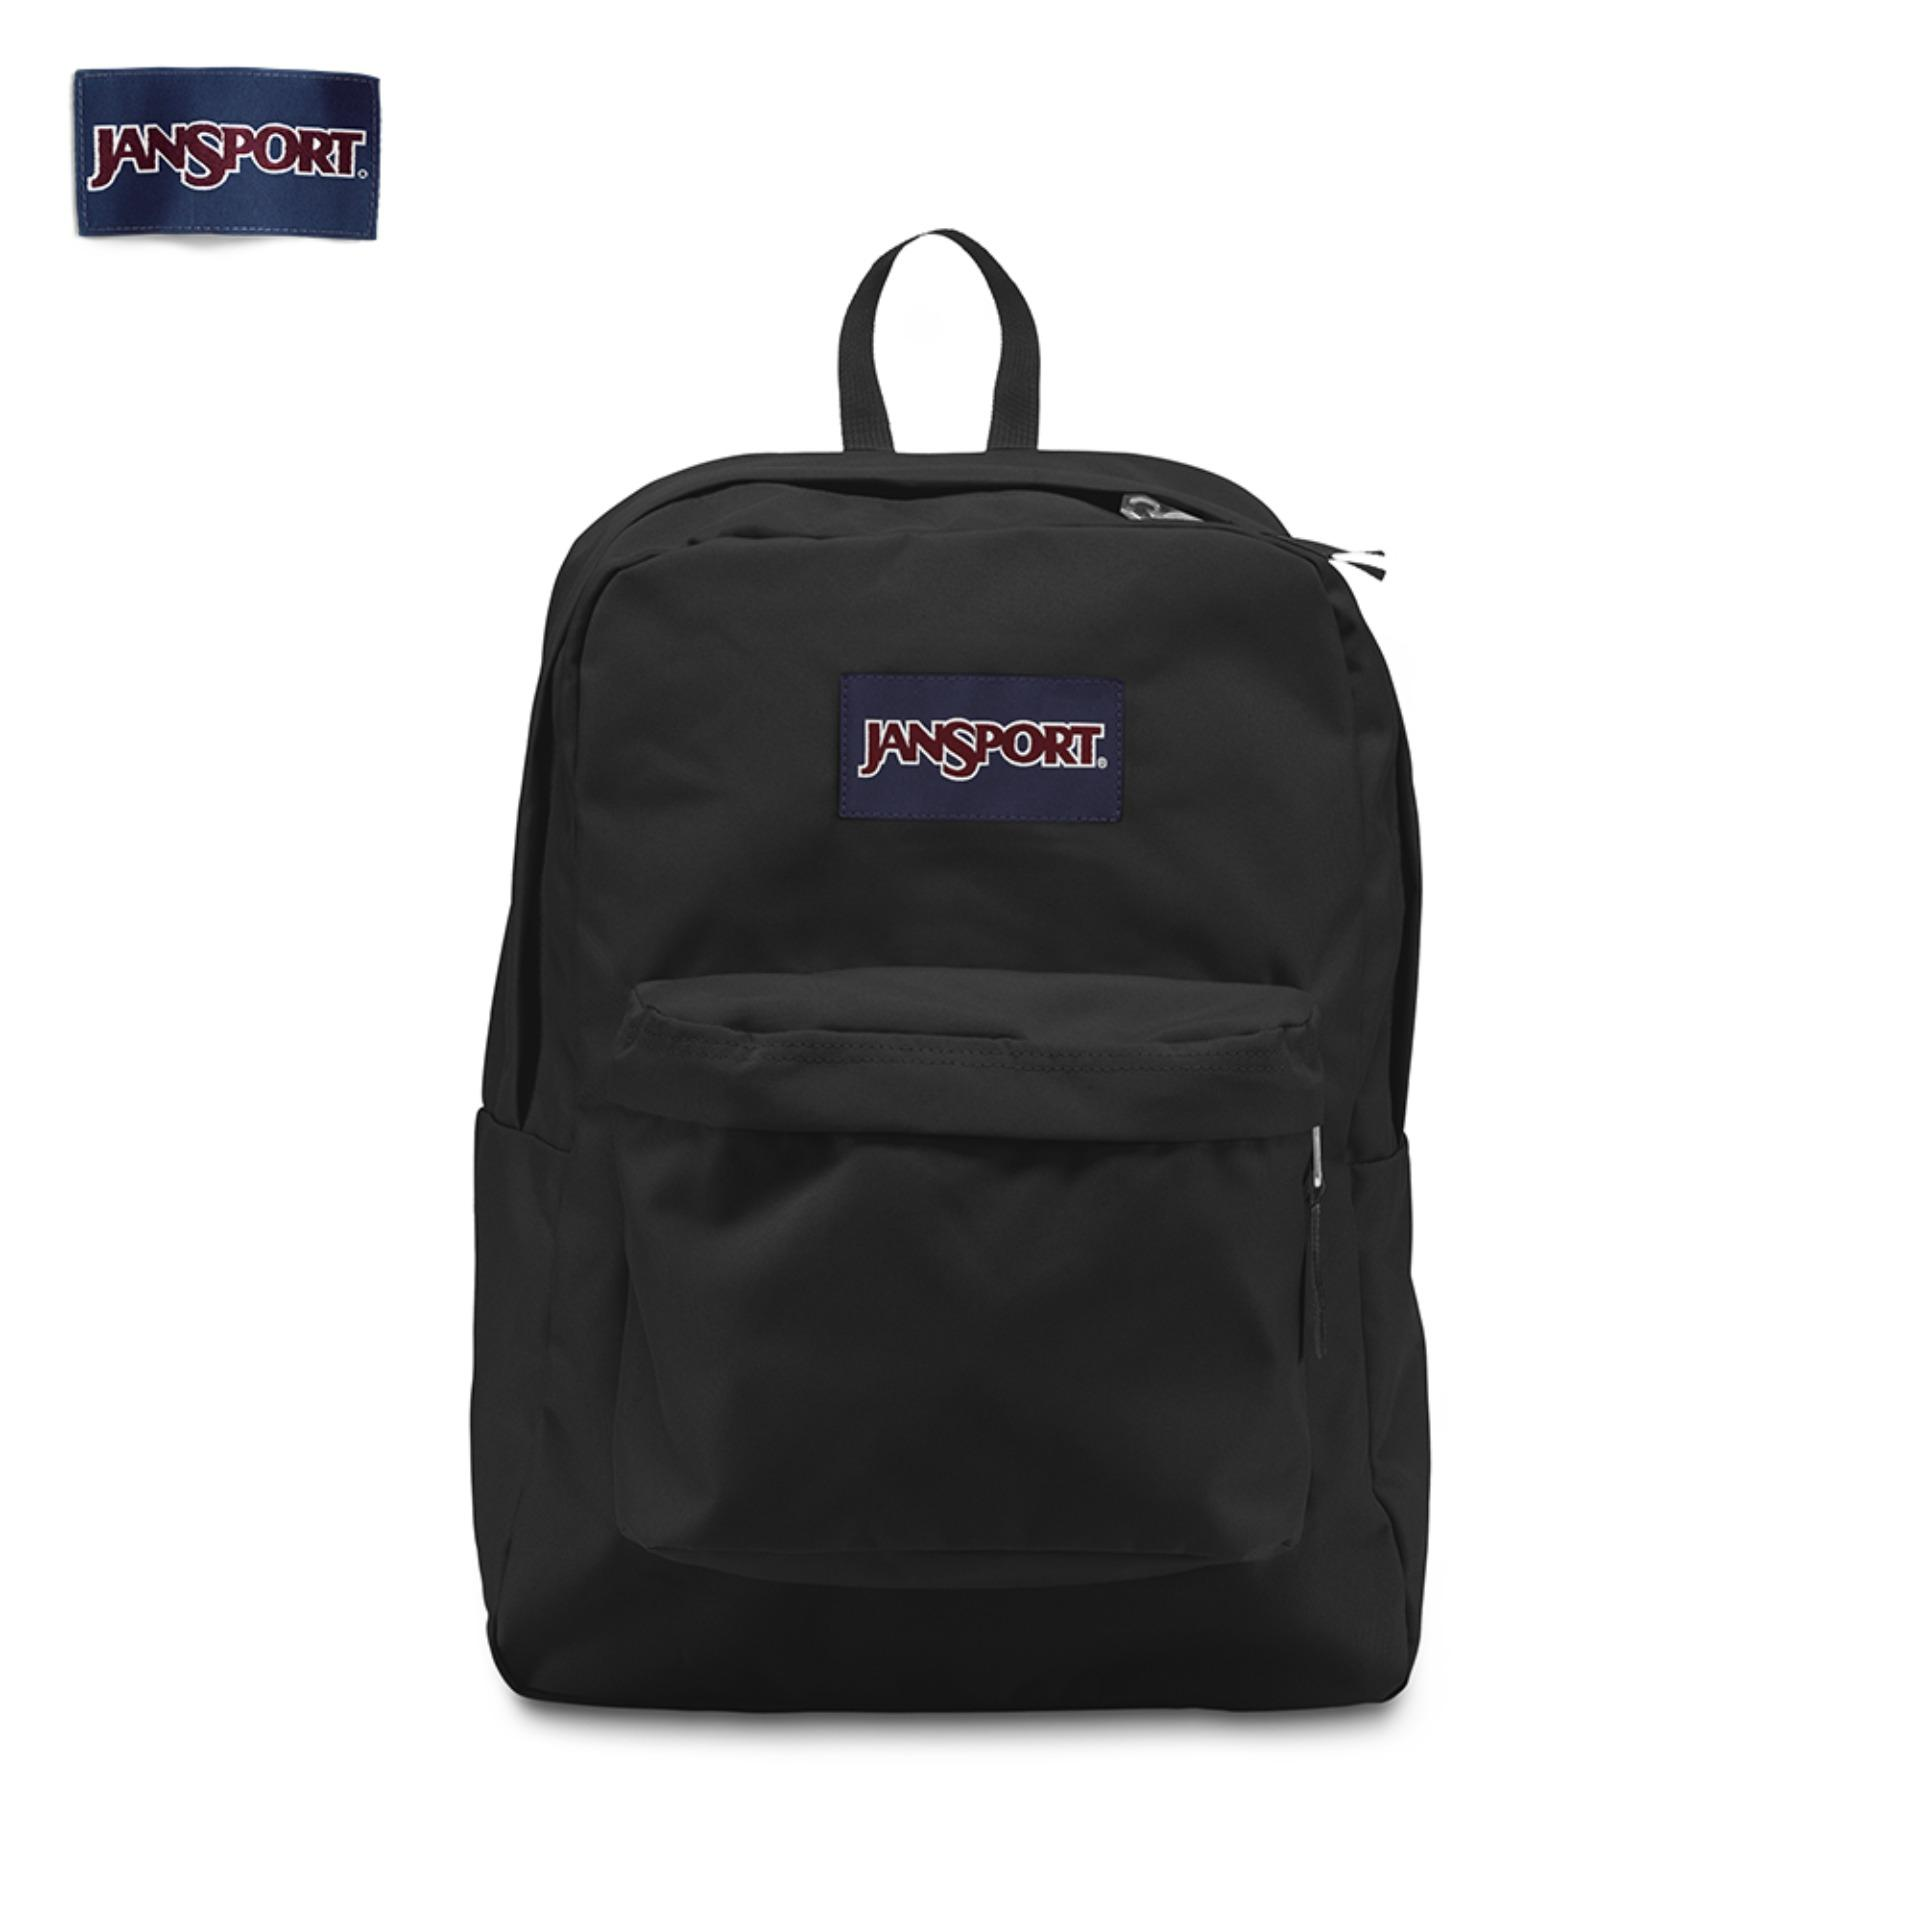 840fd12c9dd JanSport Philippines  JanSport price list - JanSport Bags ...